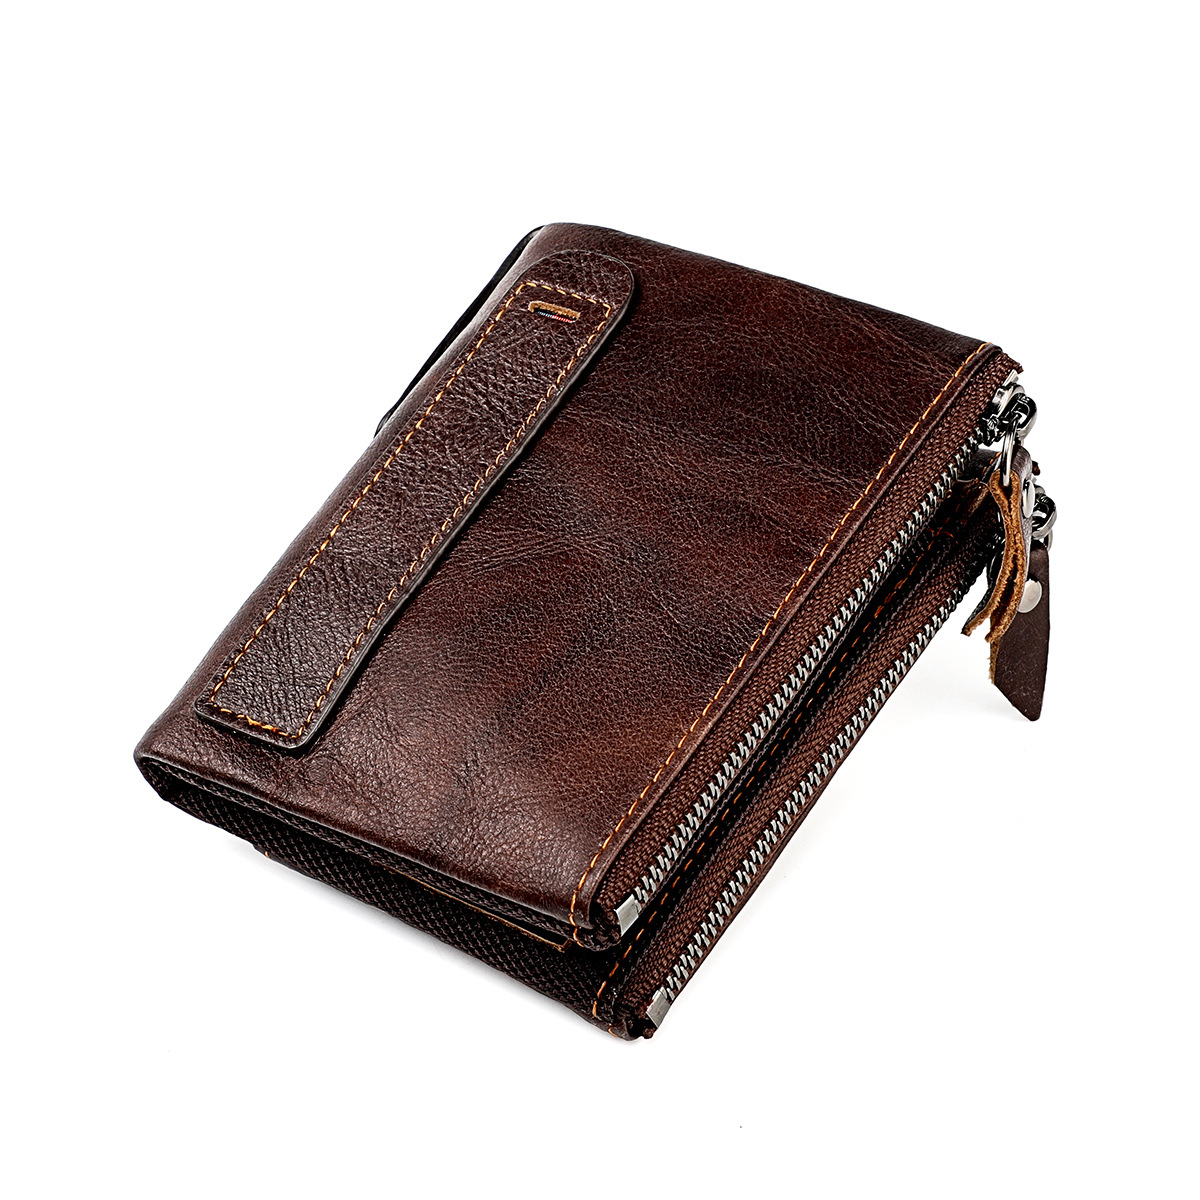 High Quality Genuine Leather Men's Wallet Vintage Wallets for Men Multi-functional Double Zipper Coin Purse RFID Card Holder New